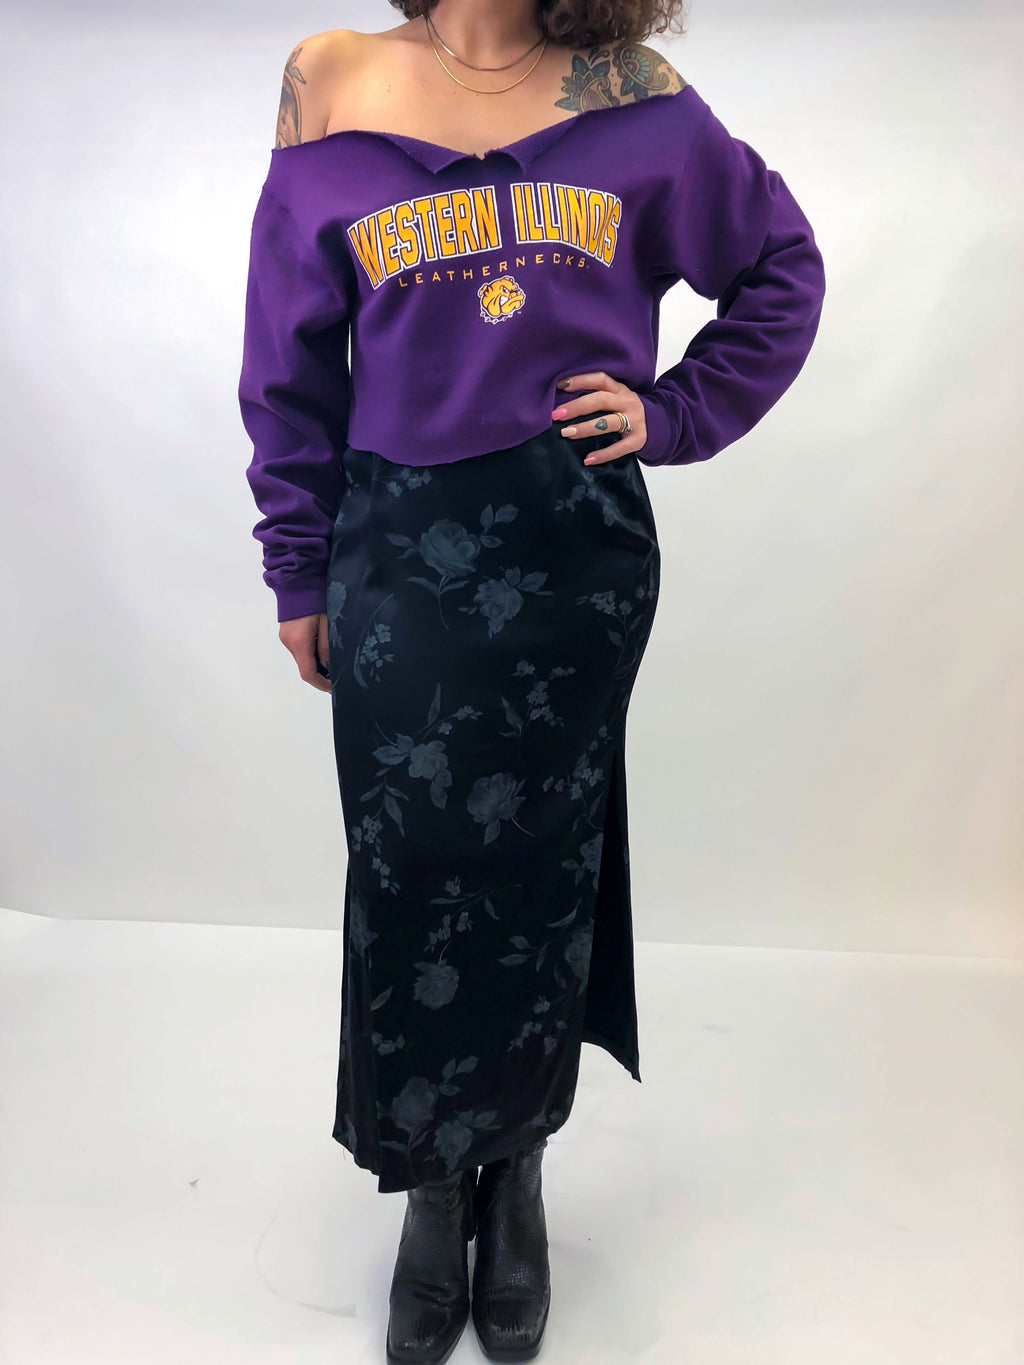 Vintage Cut Up Sweatshirt : Medium : The Leatherneck Sweater